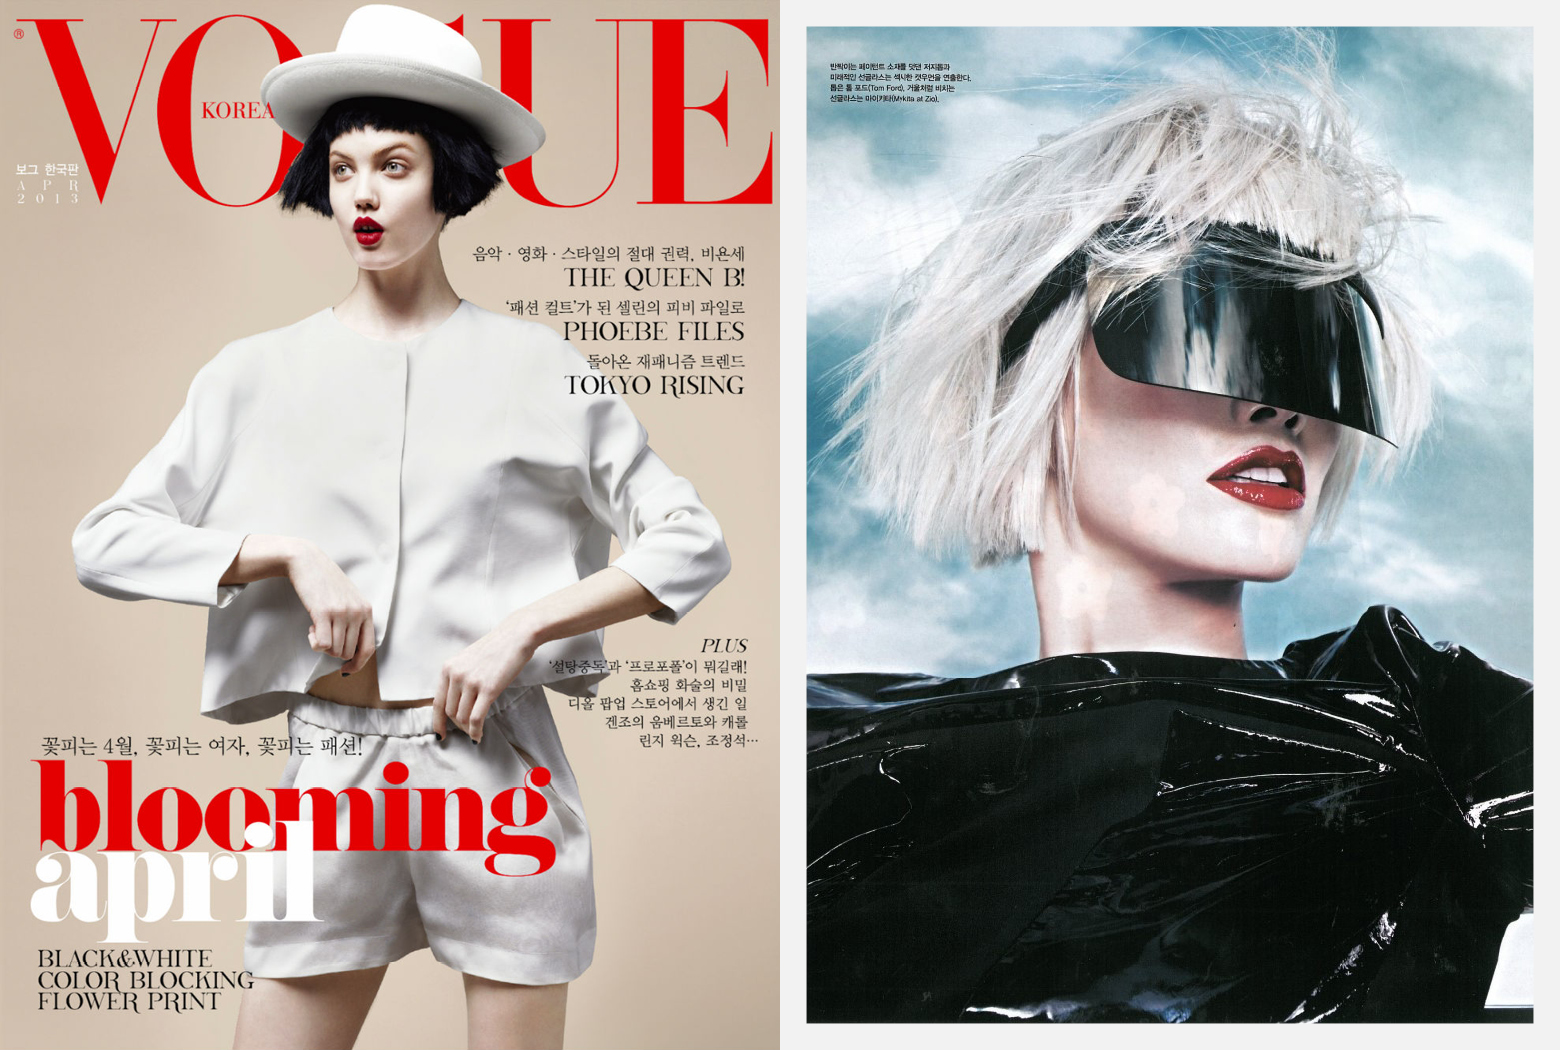 MYKITA Clipping Vogue Korea